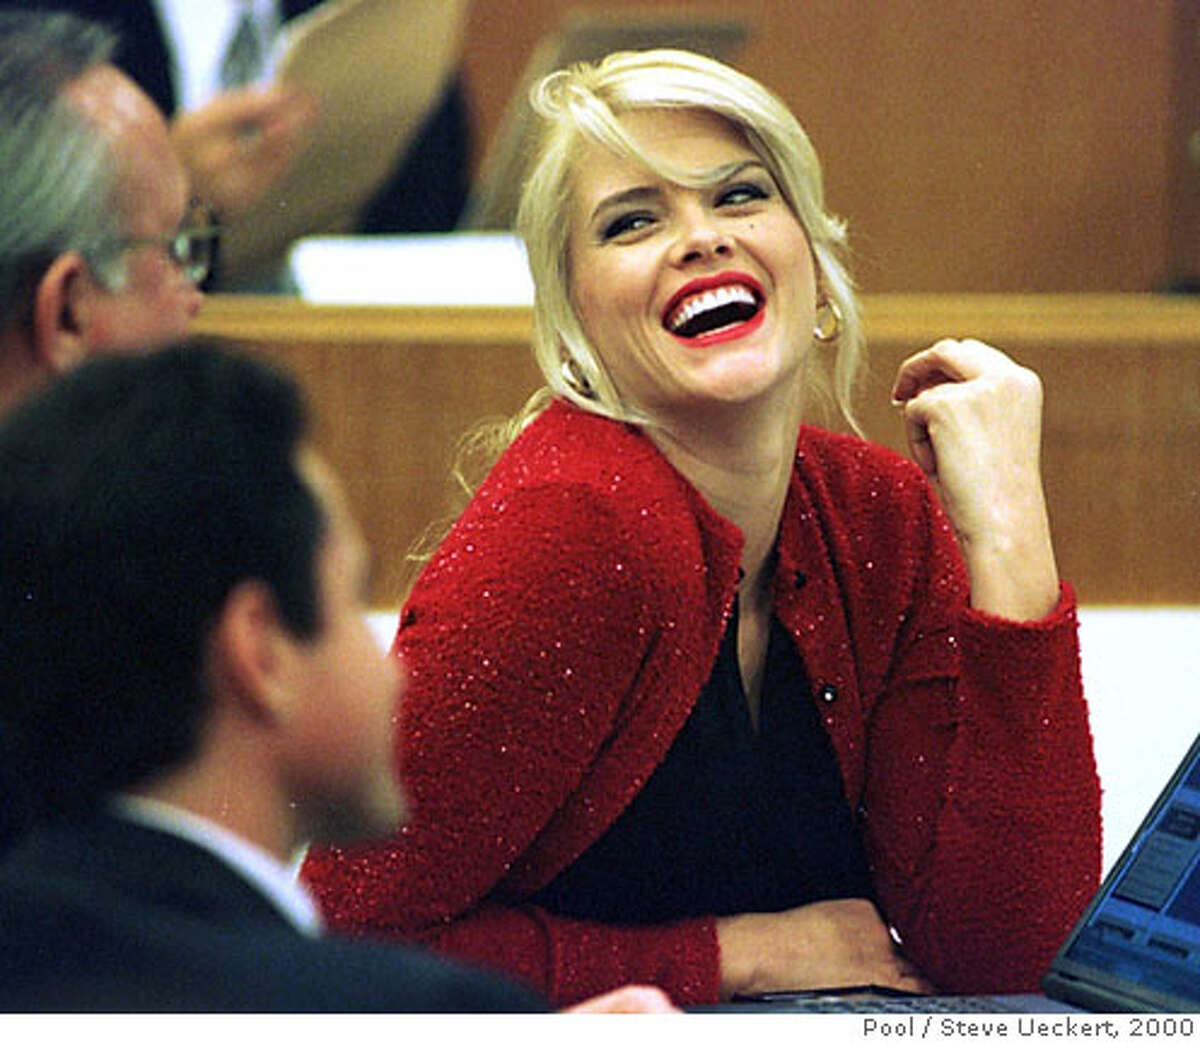 Anna Nicole Smith quotes Anna Nicole Smith, the Texas-born stripper-turned-model and reality star, was one of America's most beloved bombshells. See photos from her tumultuous life and quotes from her that have made us laugh.